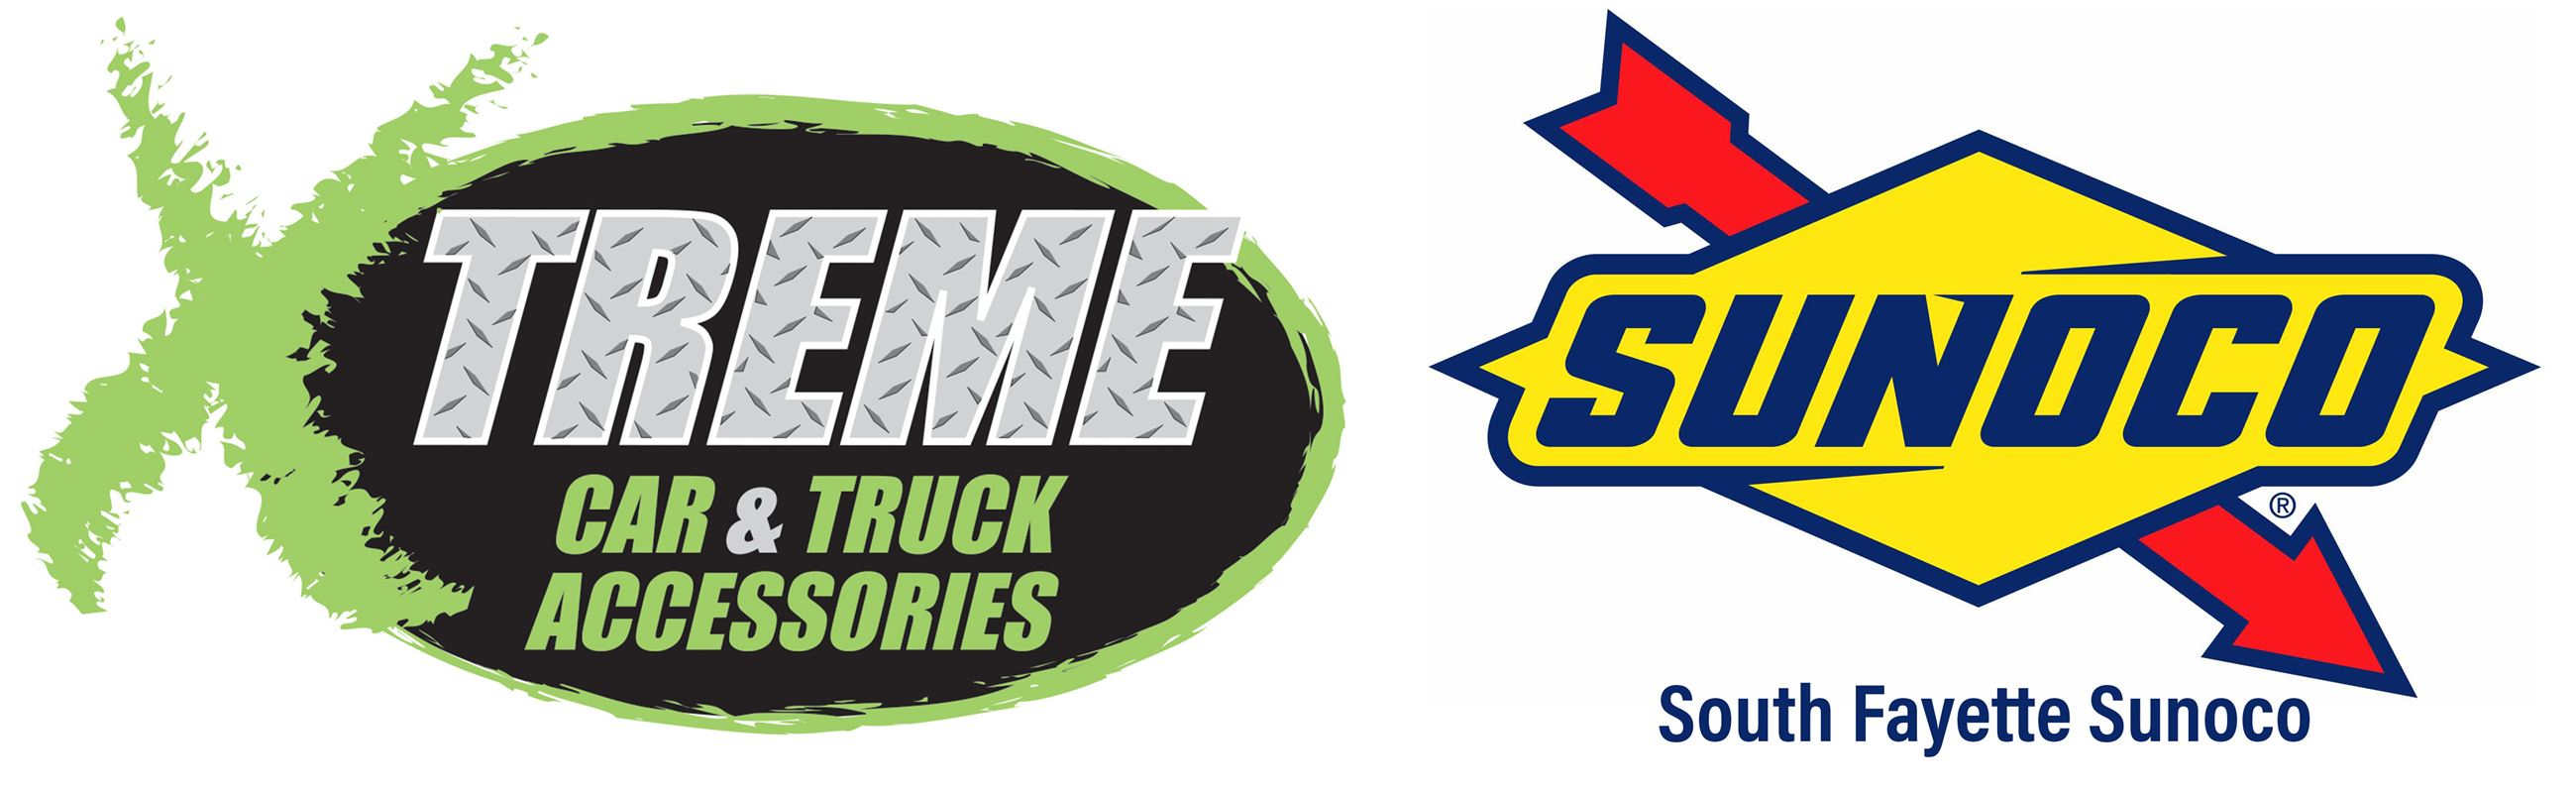 Xtreme and Sunoco Logos